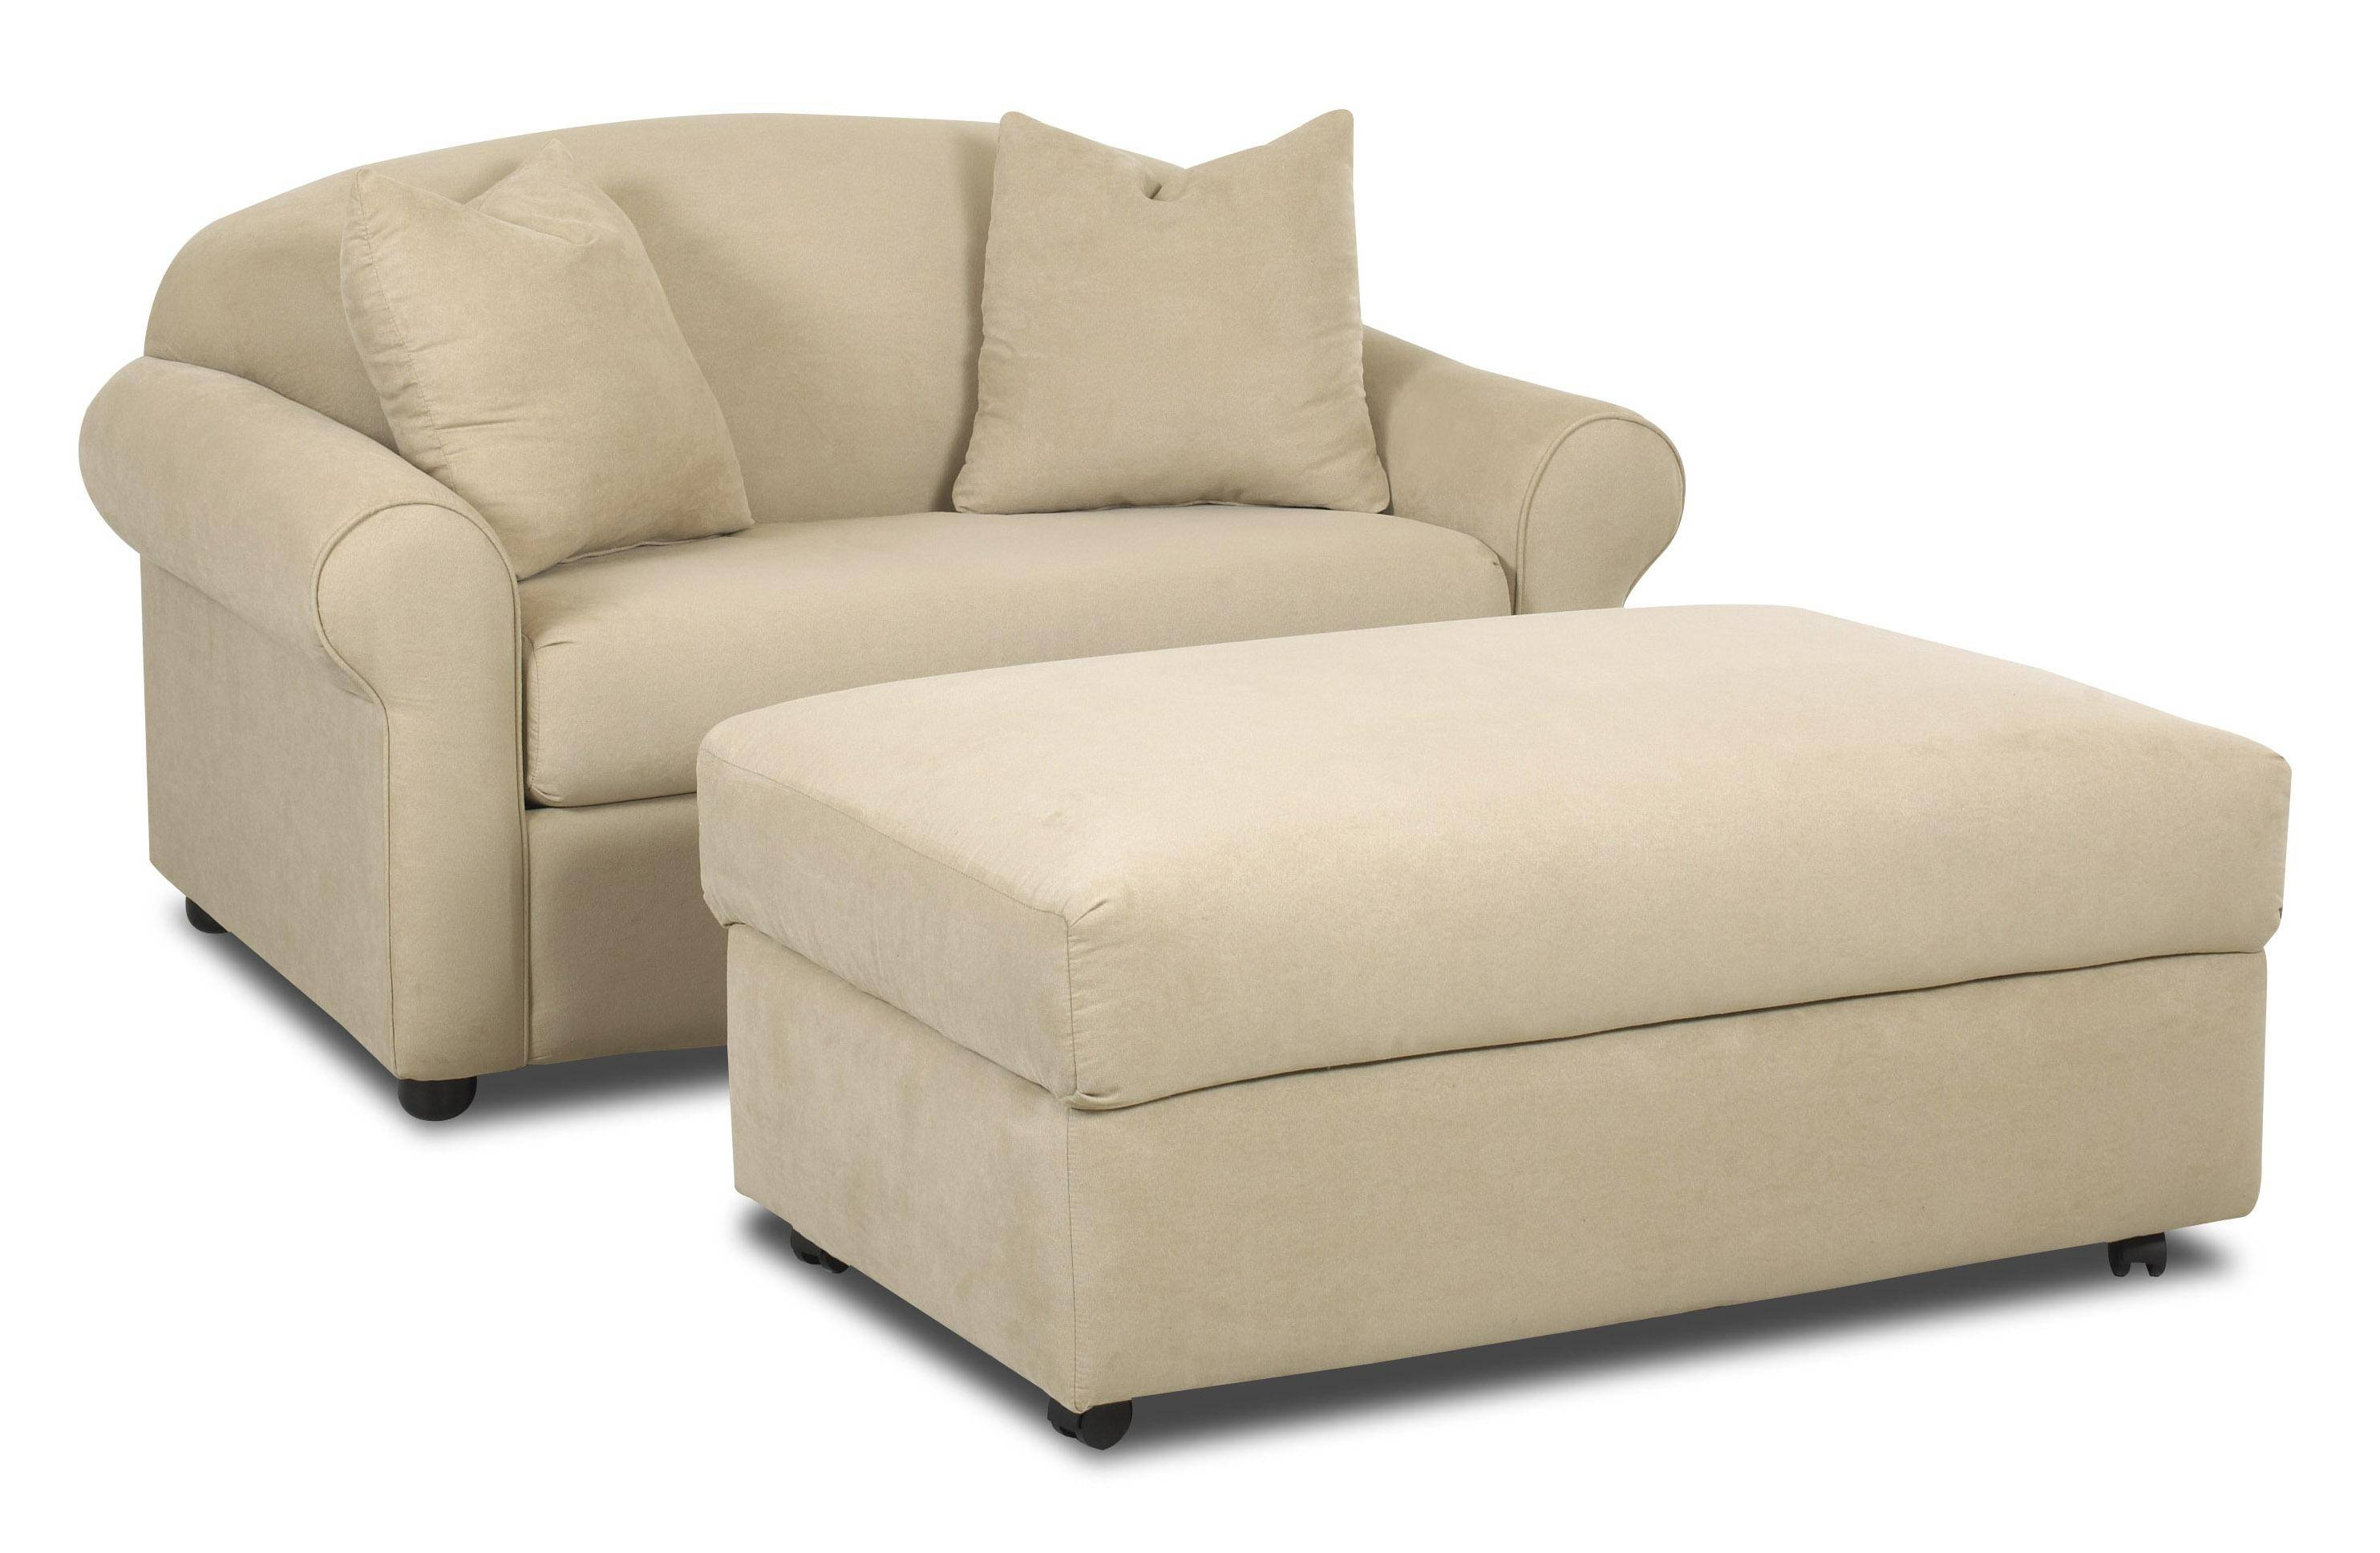 Popular Photo of Small Sofas And Chairs